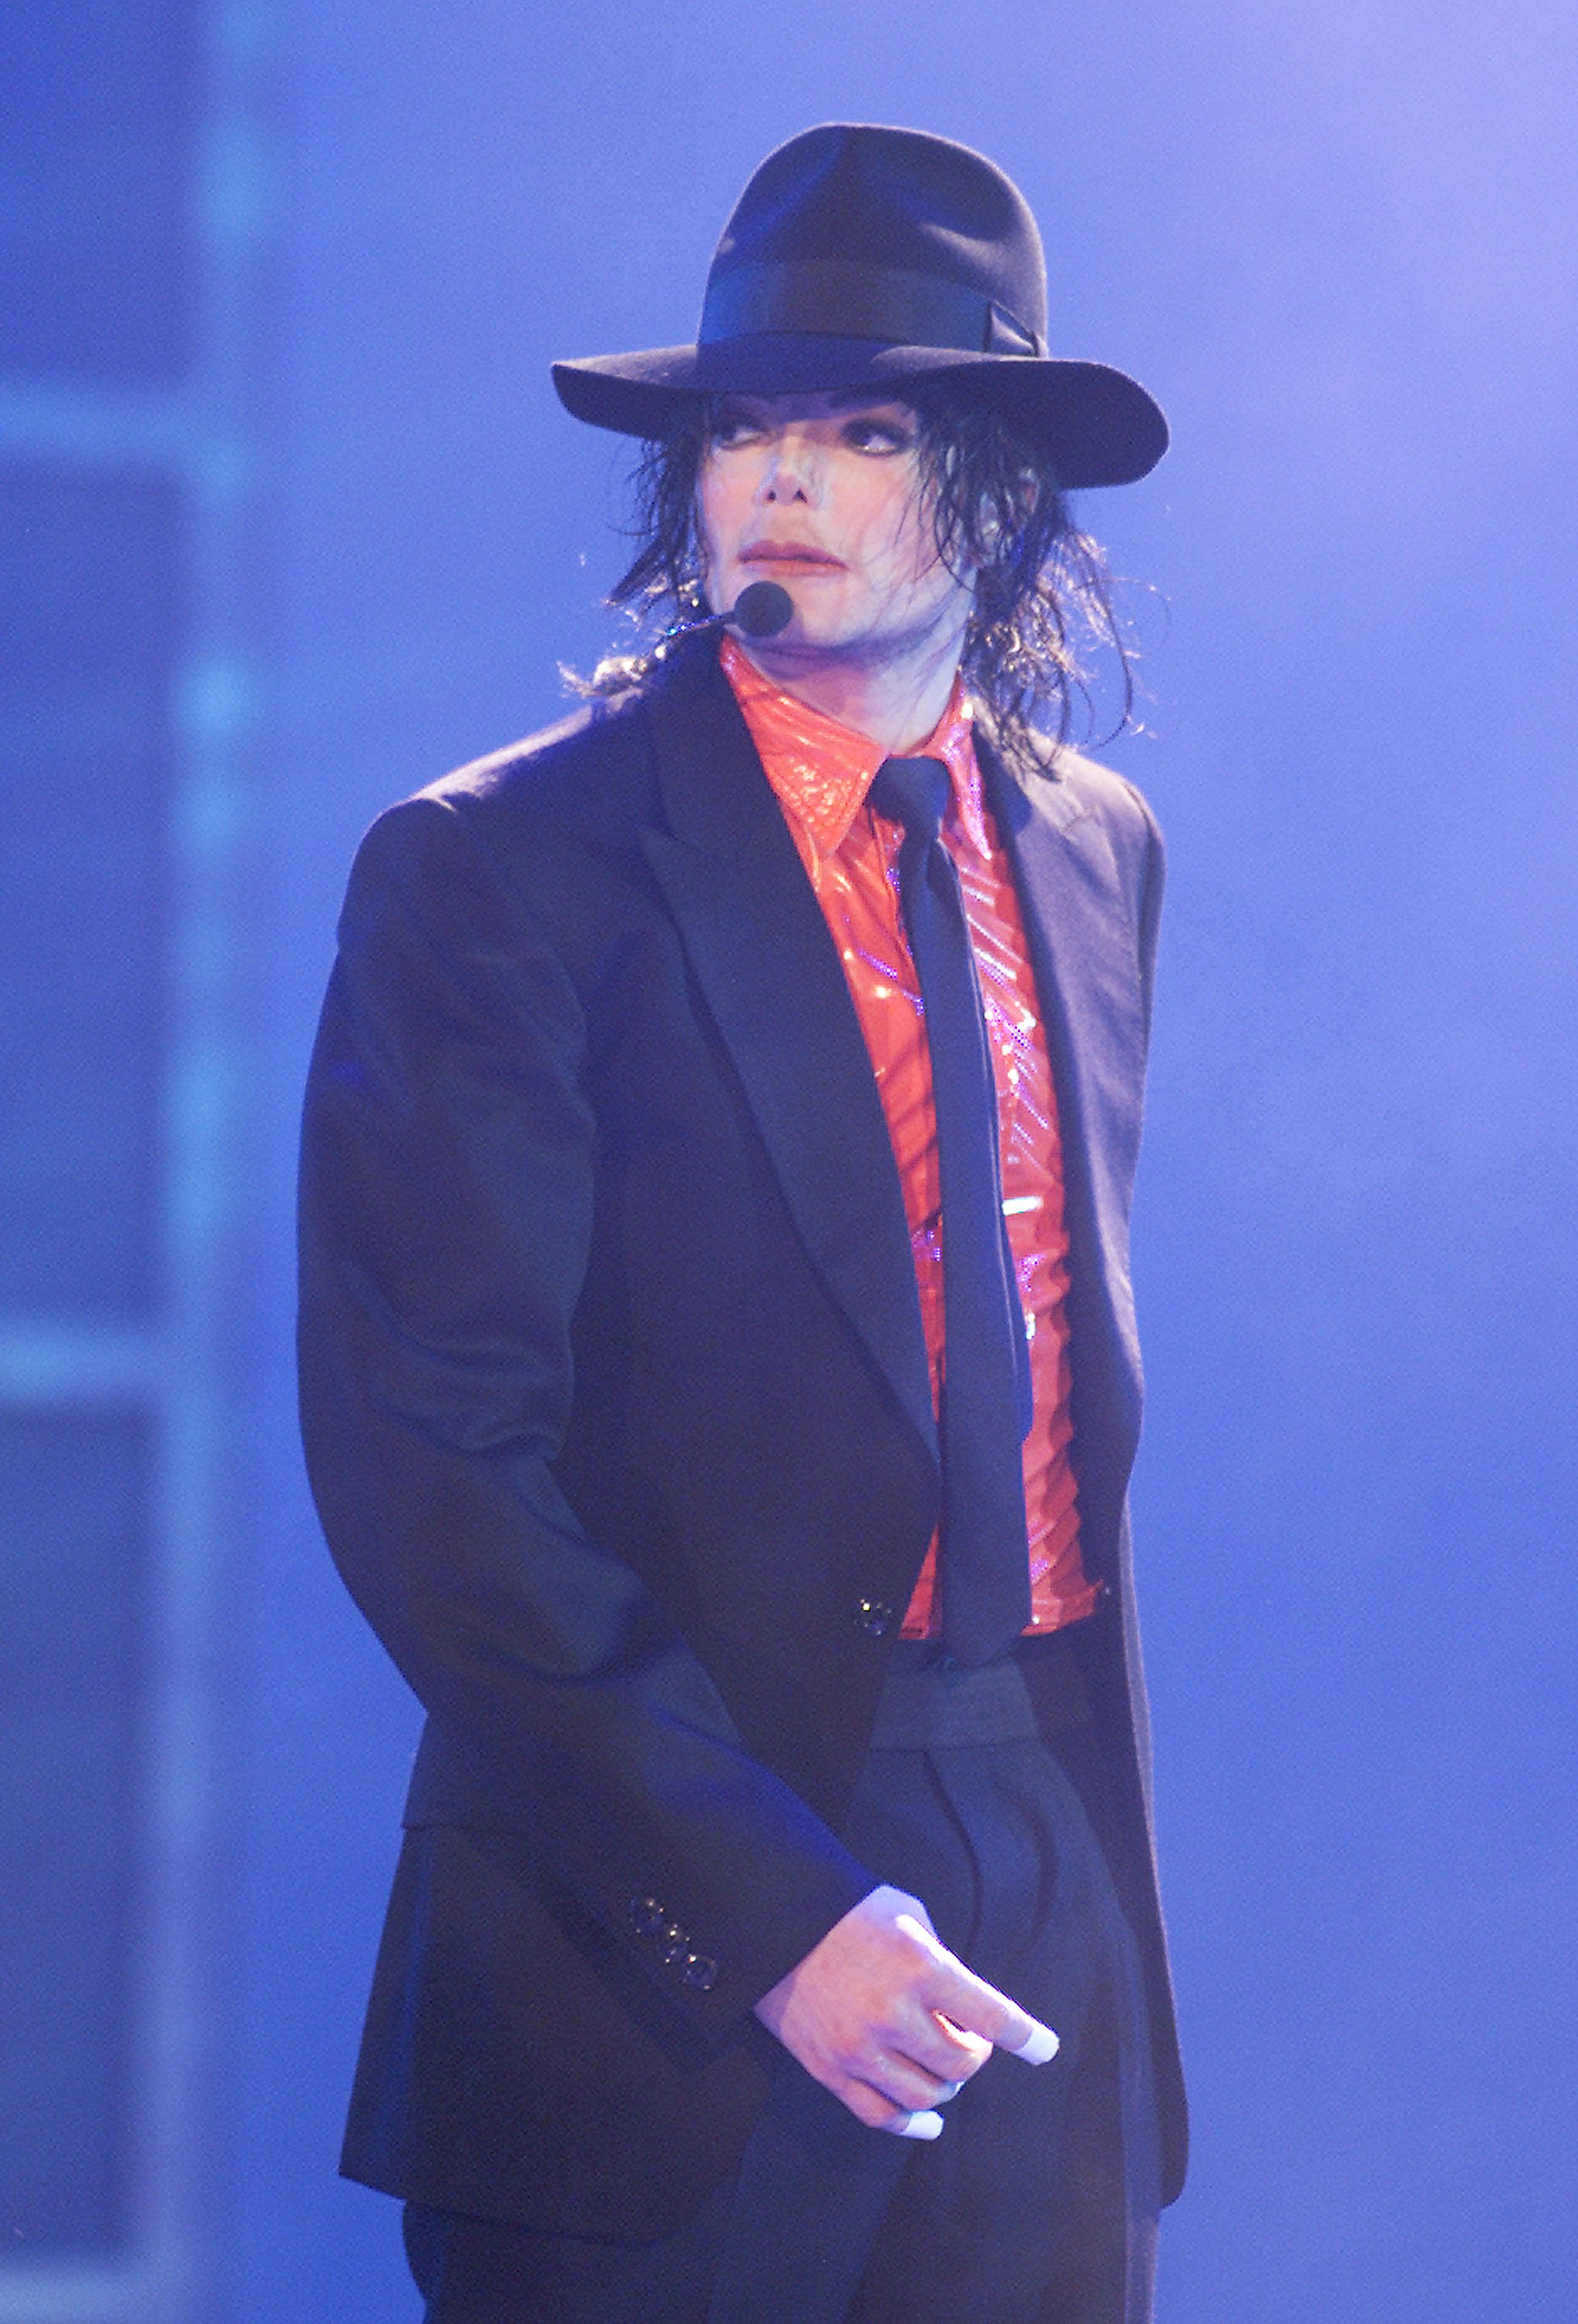 """Michael Jackson performs at the taping of """"American Bandstand's 50th...A Celebration"""" at the Pasadena Civic Auditorium, April 20, 2002. 